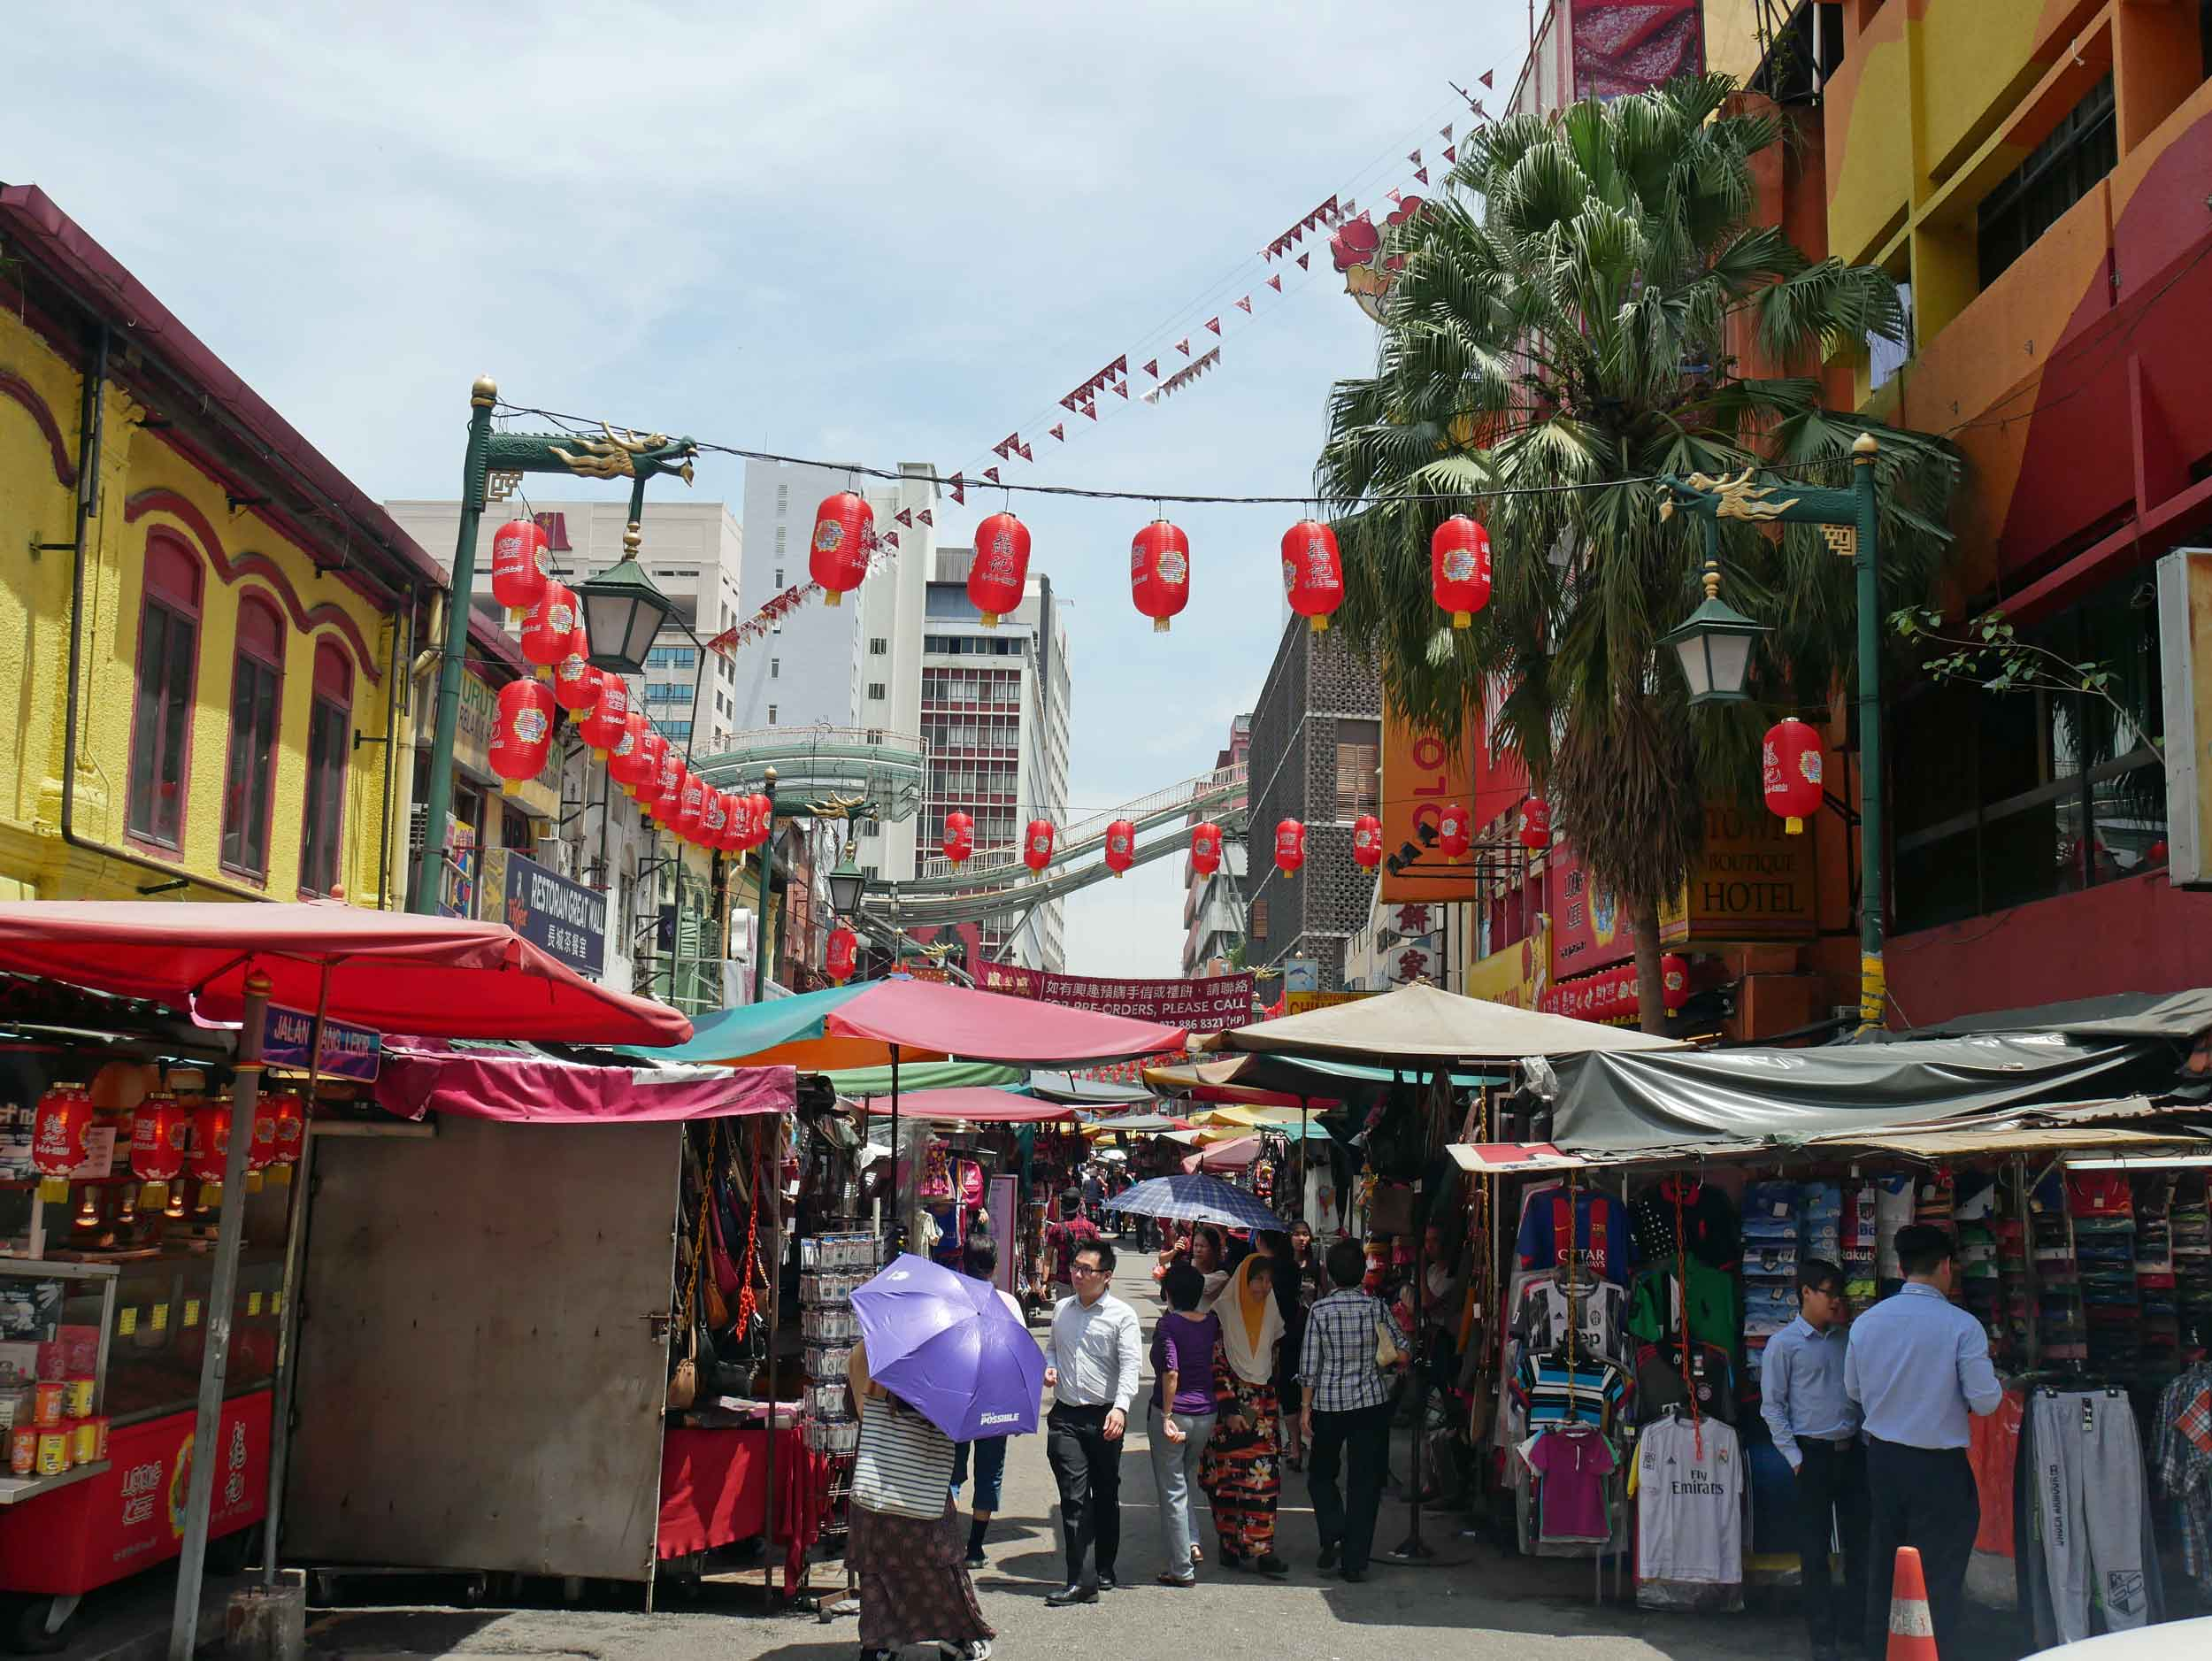 In the KL old town, is a large and vibrant Chinatown with local shops, cafes and groceries lining the streets.